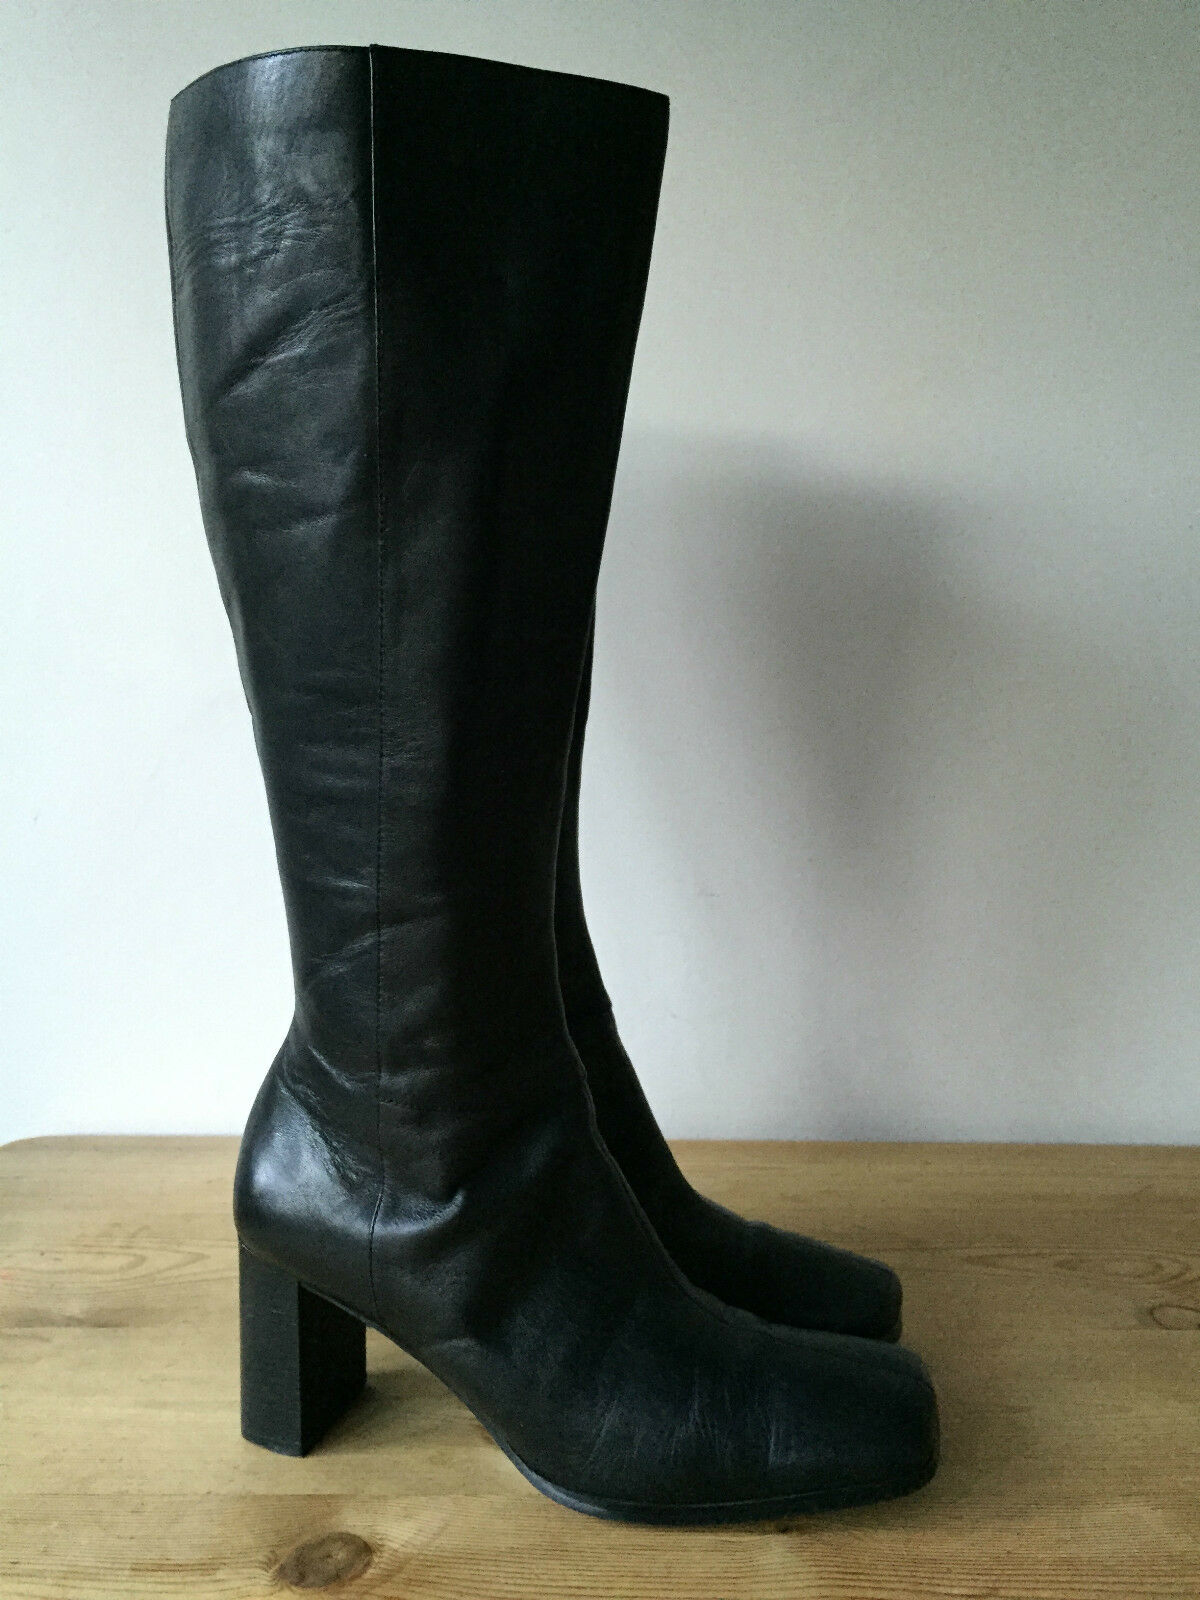 MARKS & SPENCER LADIES BLACK LEATHER KNEE HIGH LEATHER LINED BOOTS UK5